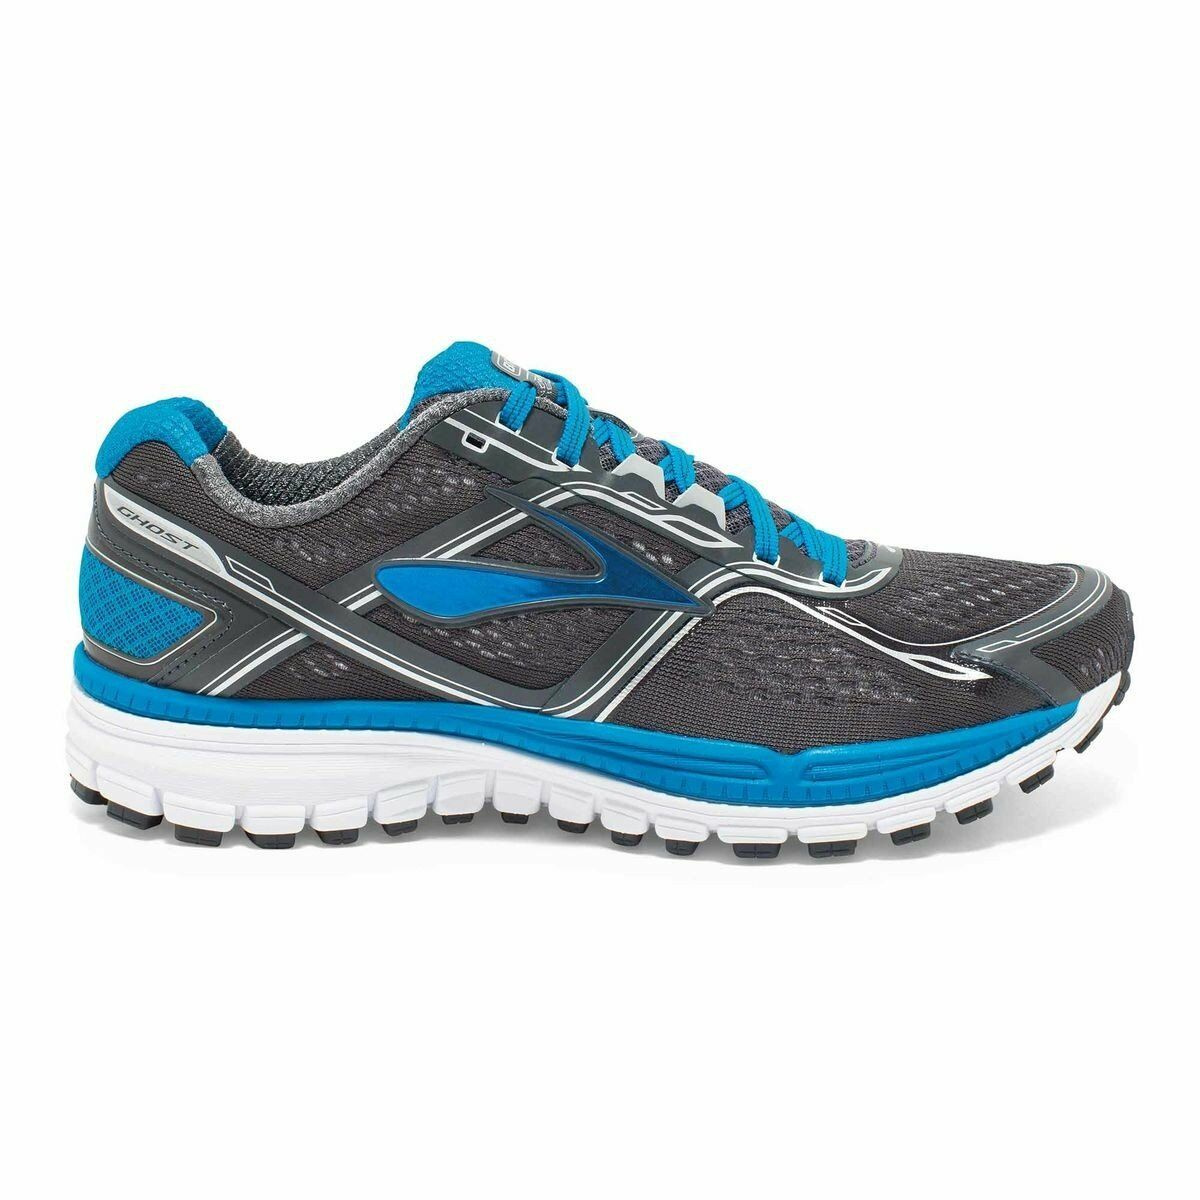 Brooks Ghost 8 Dark Grey bluee White D Width Men Running shoes 1101981D060